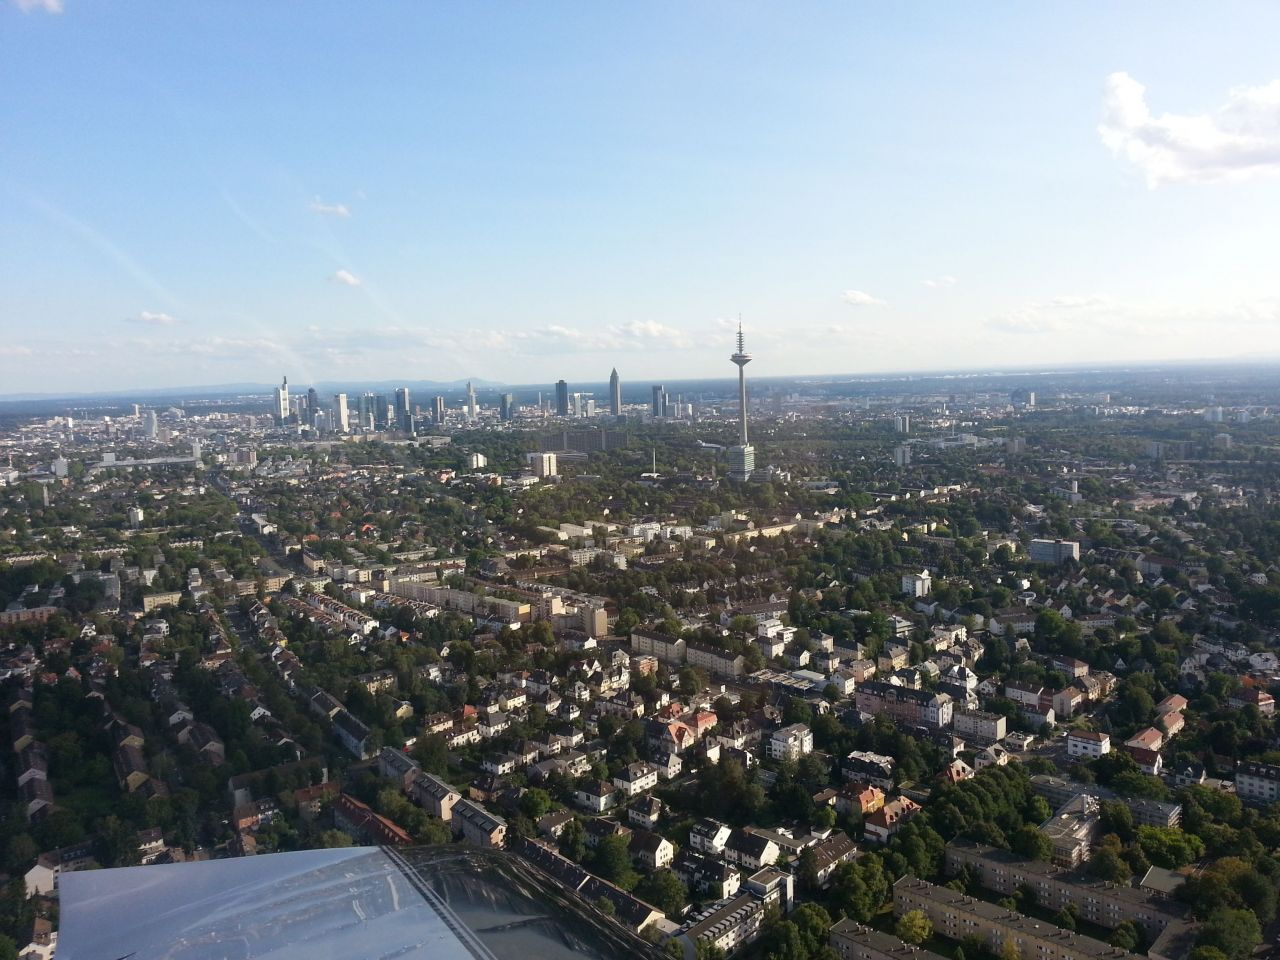 20140812_182406 - Mainhatten  1.000 ft.